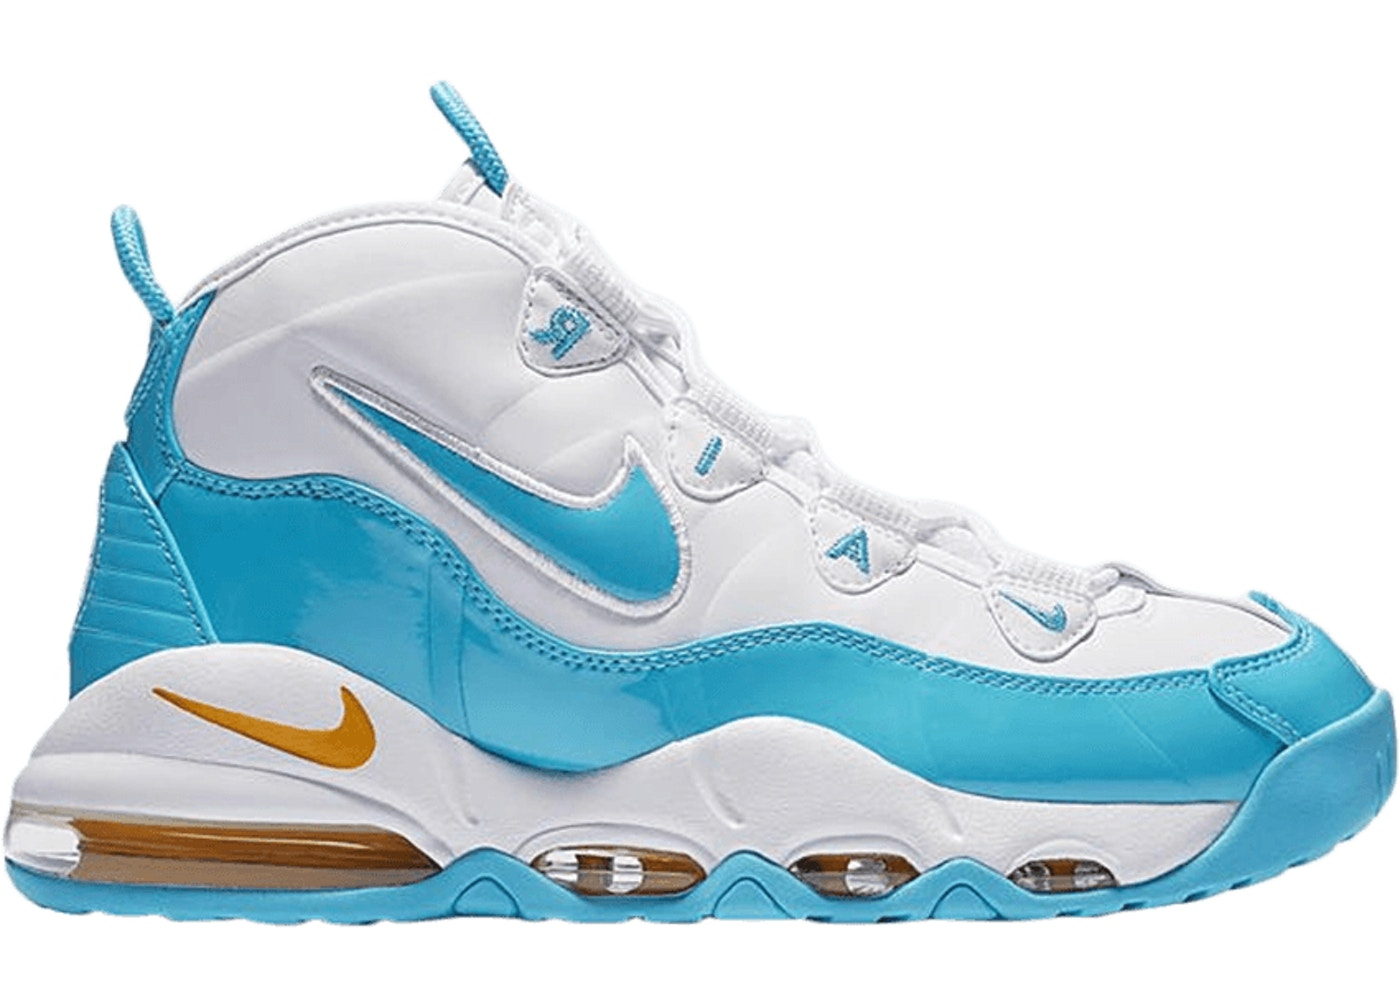 sale retailer 70951 3de90 Air Max Uptempo 95 Blue Fury